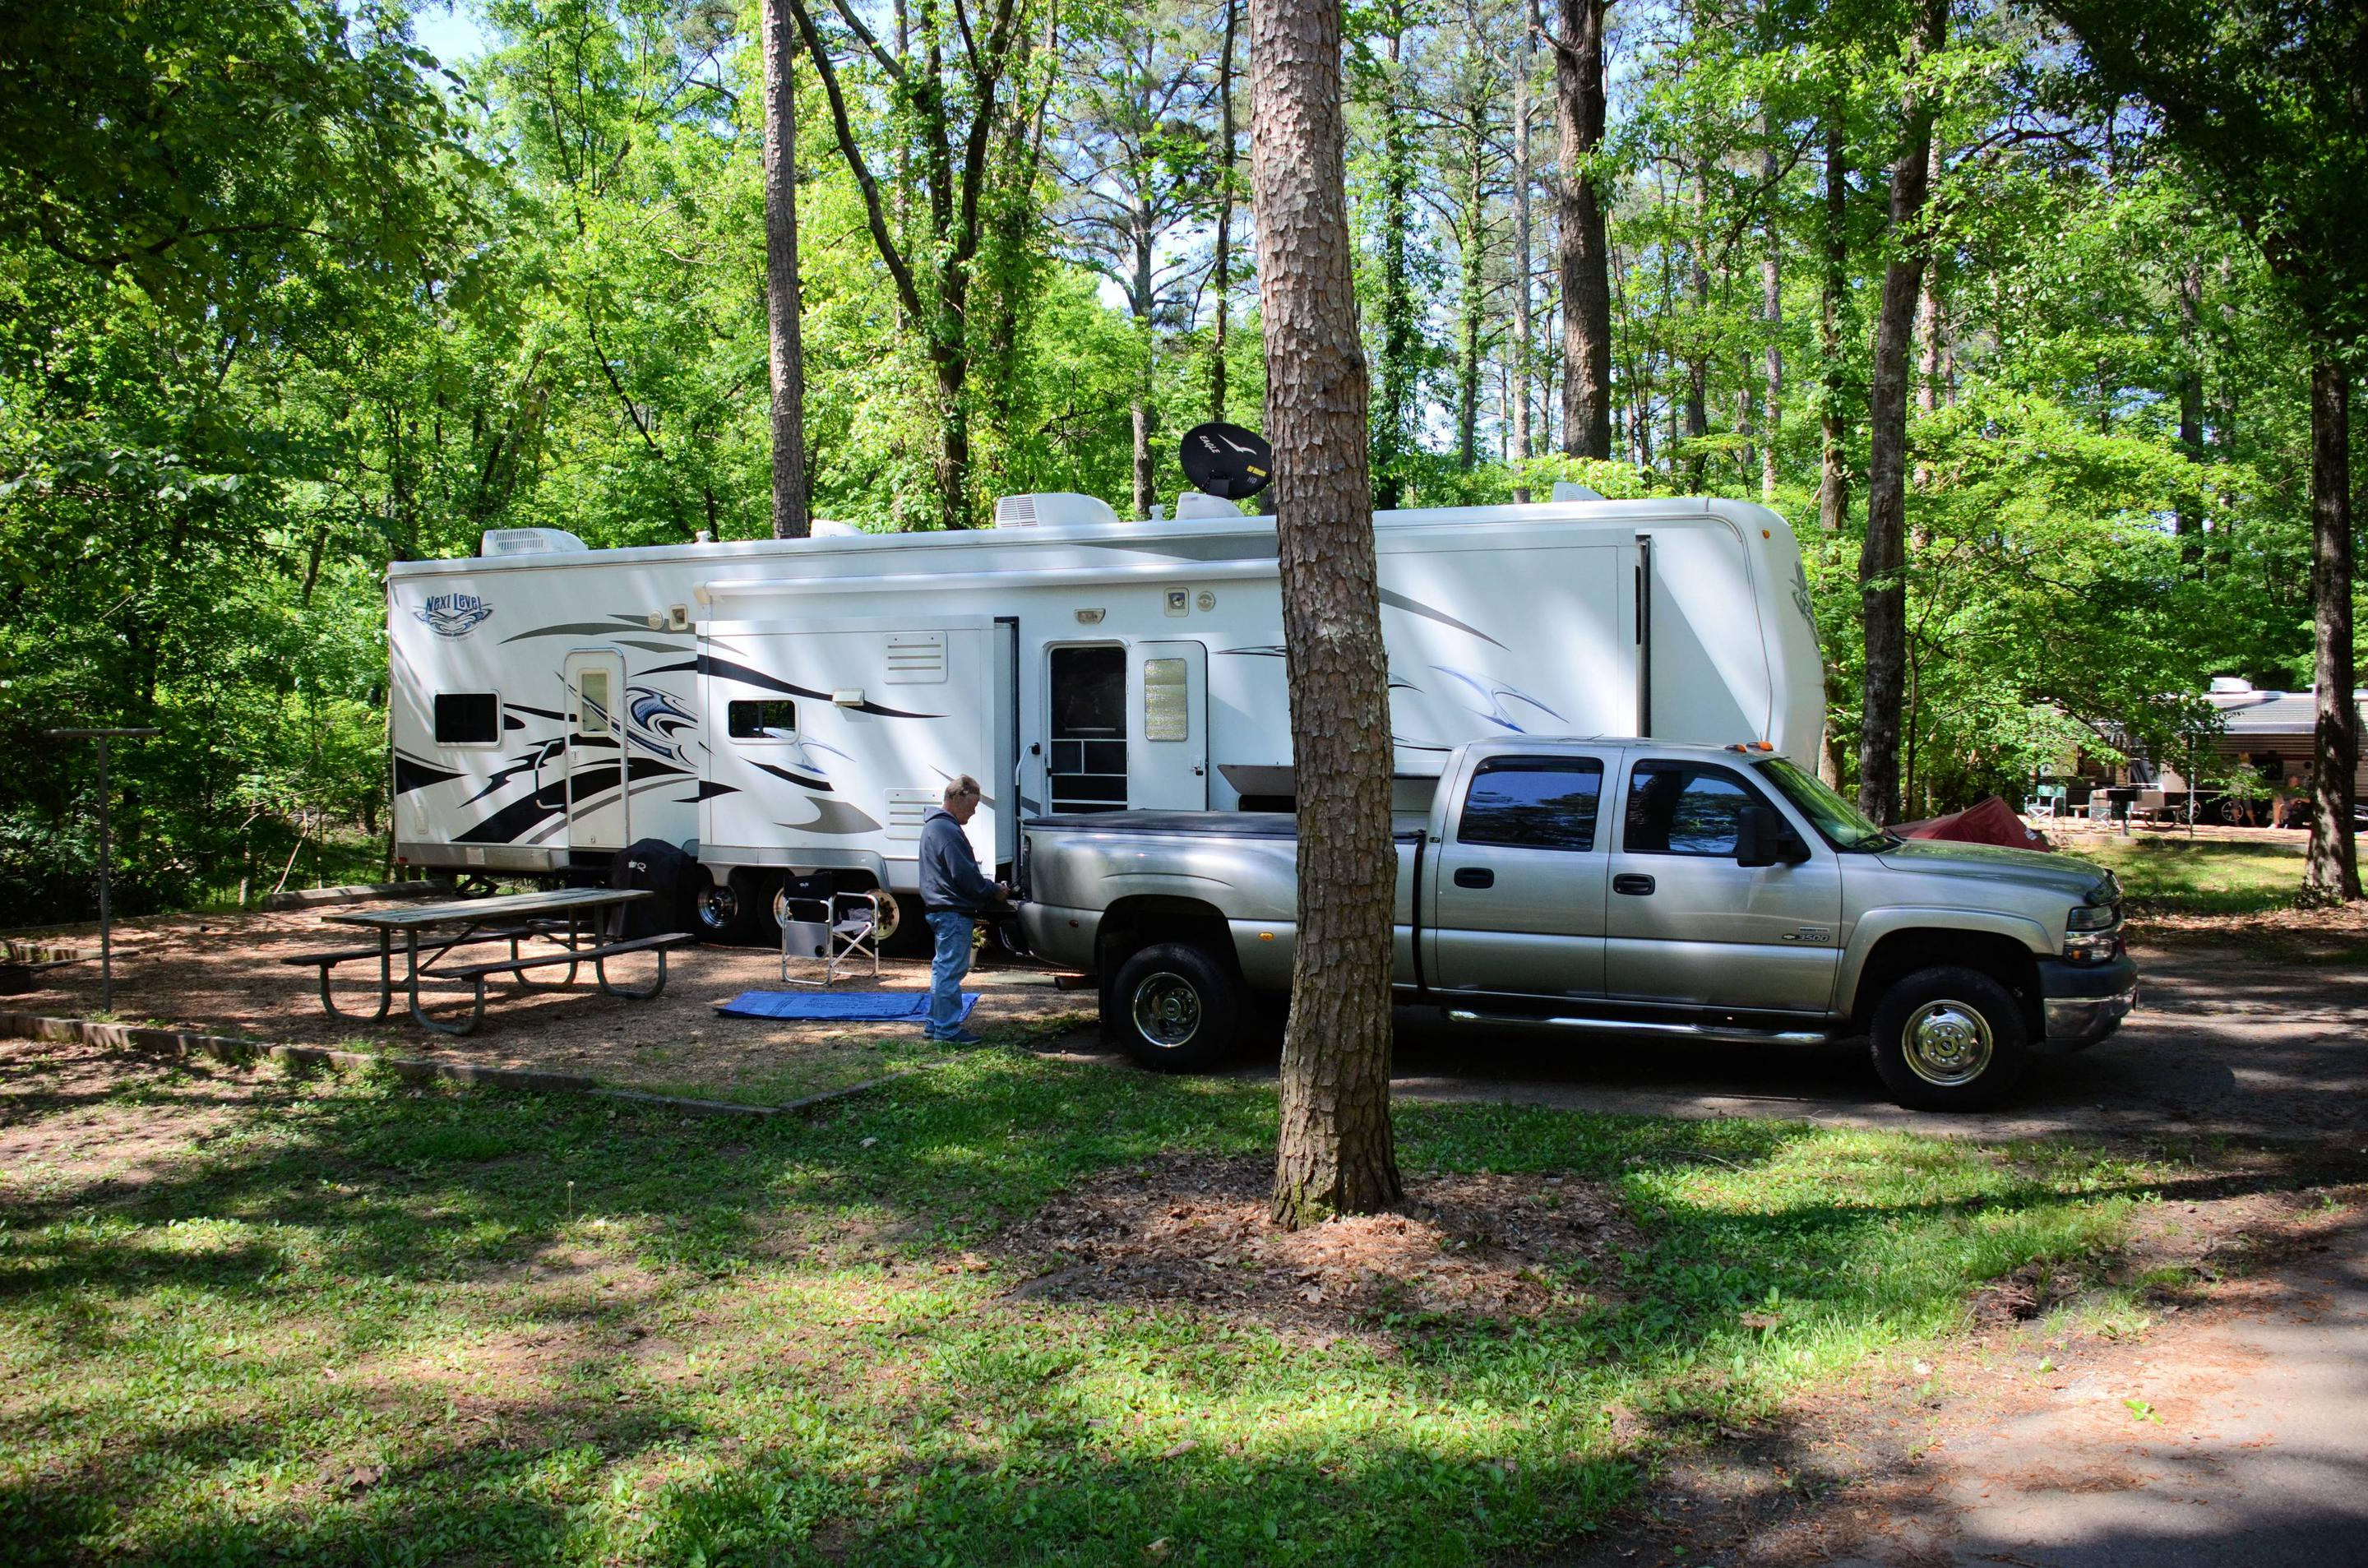 Campsite view, awning clearance.McKinney Campground, campsite 75